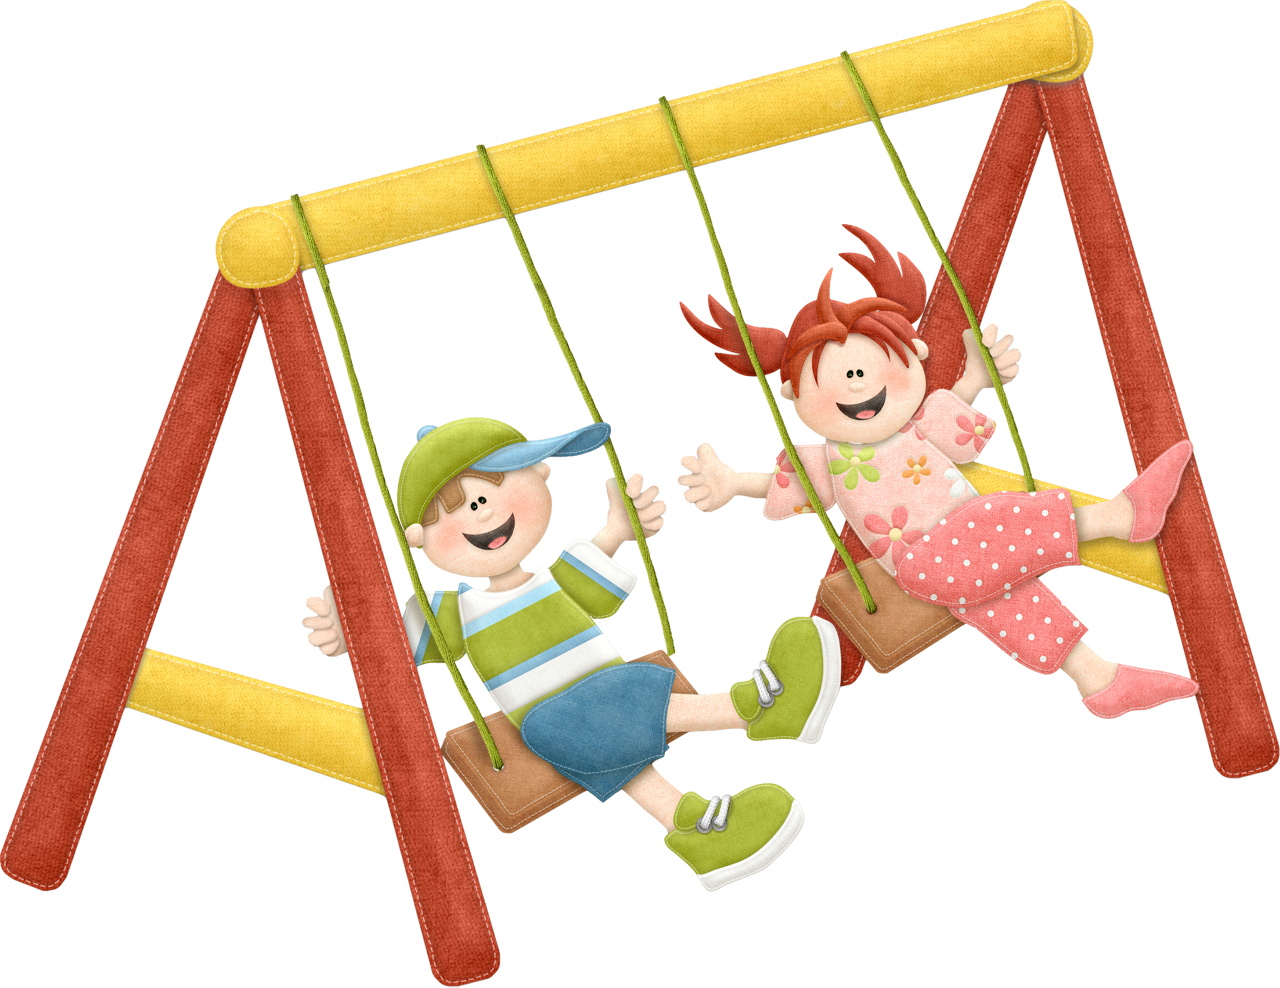 Clipart park outside playground. Swingse png pinterest clip